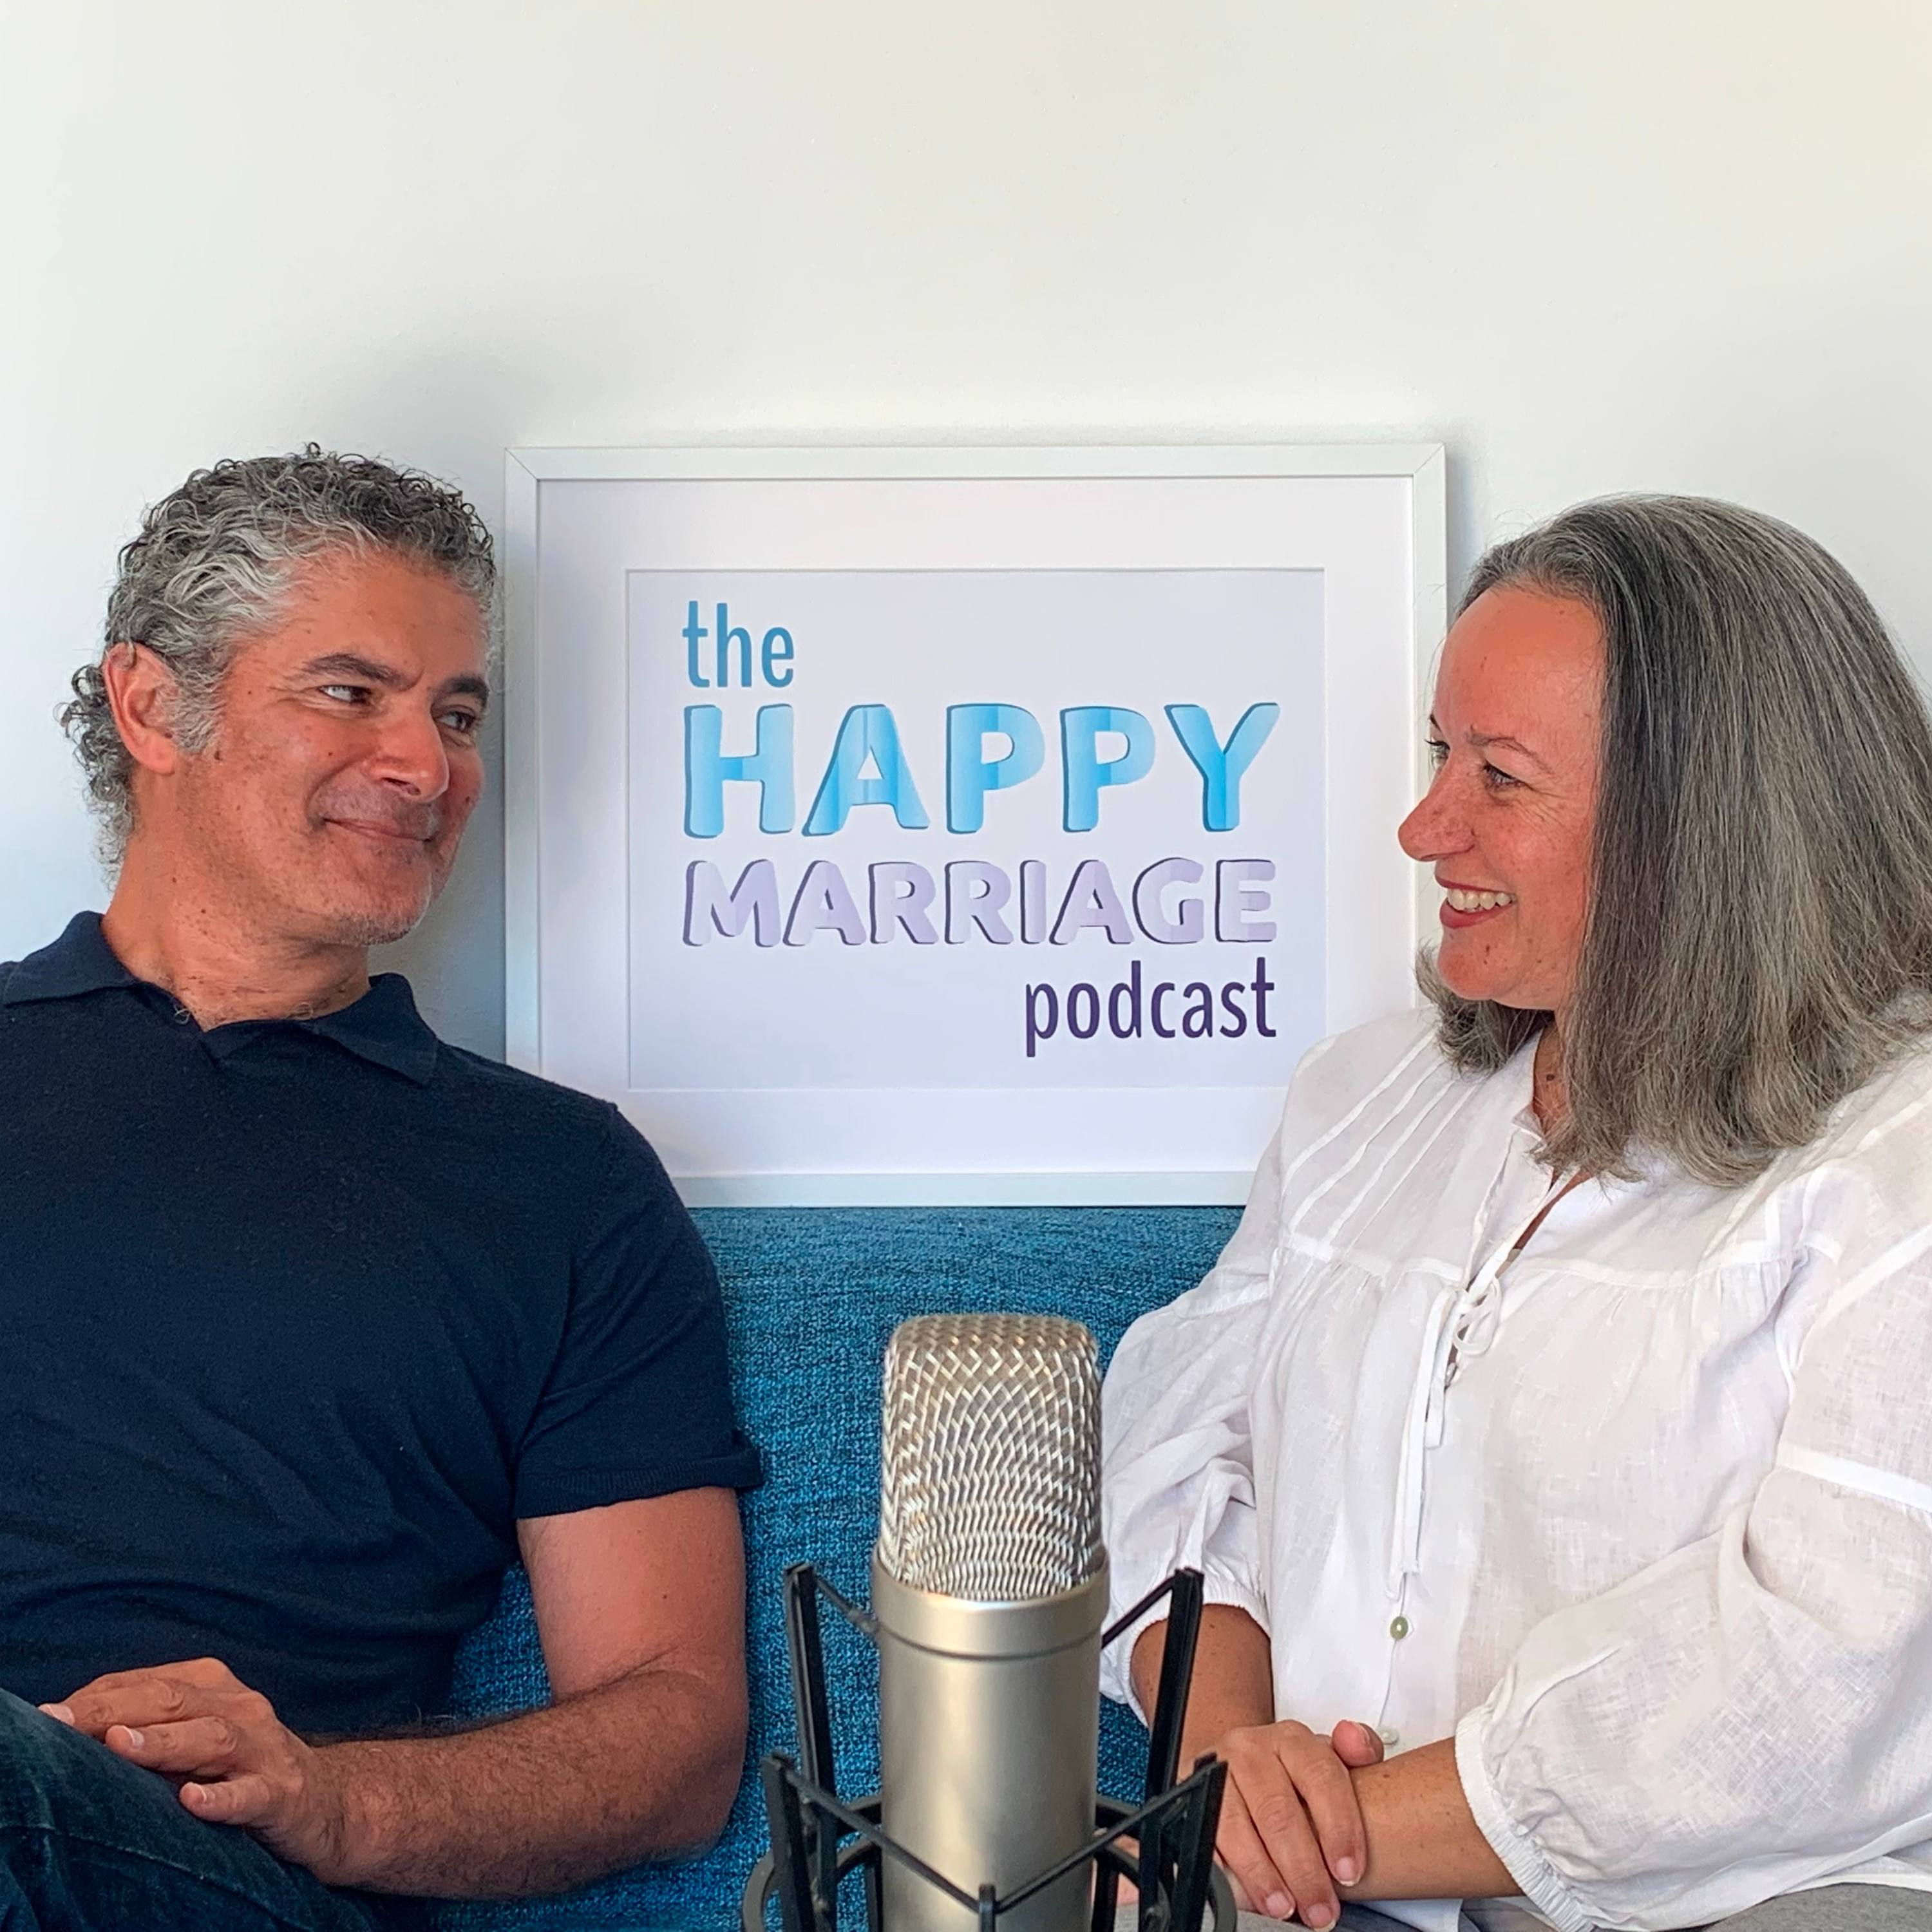 The Happy Marriage Podcast